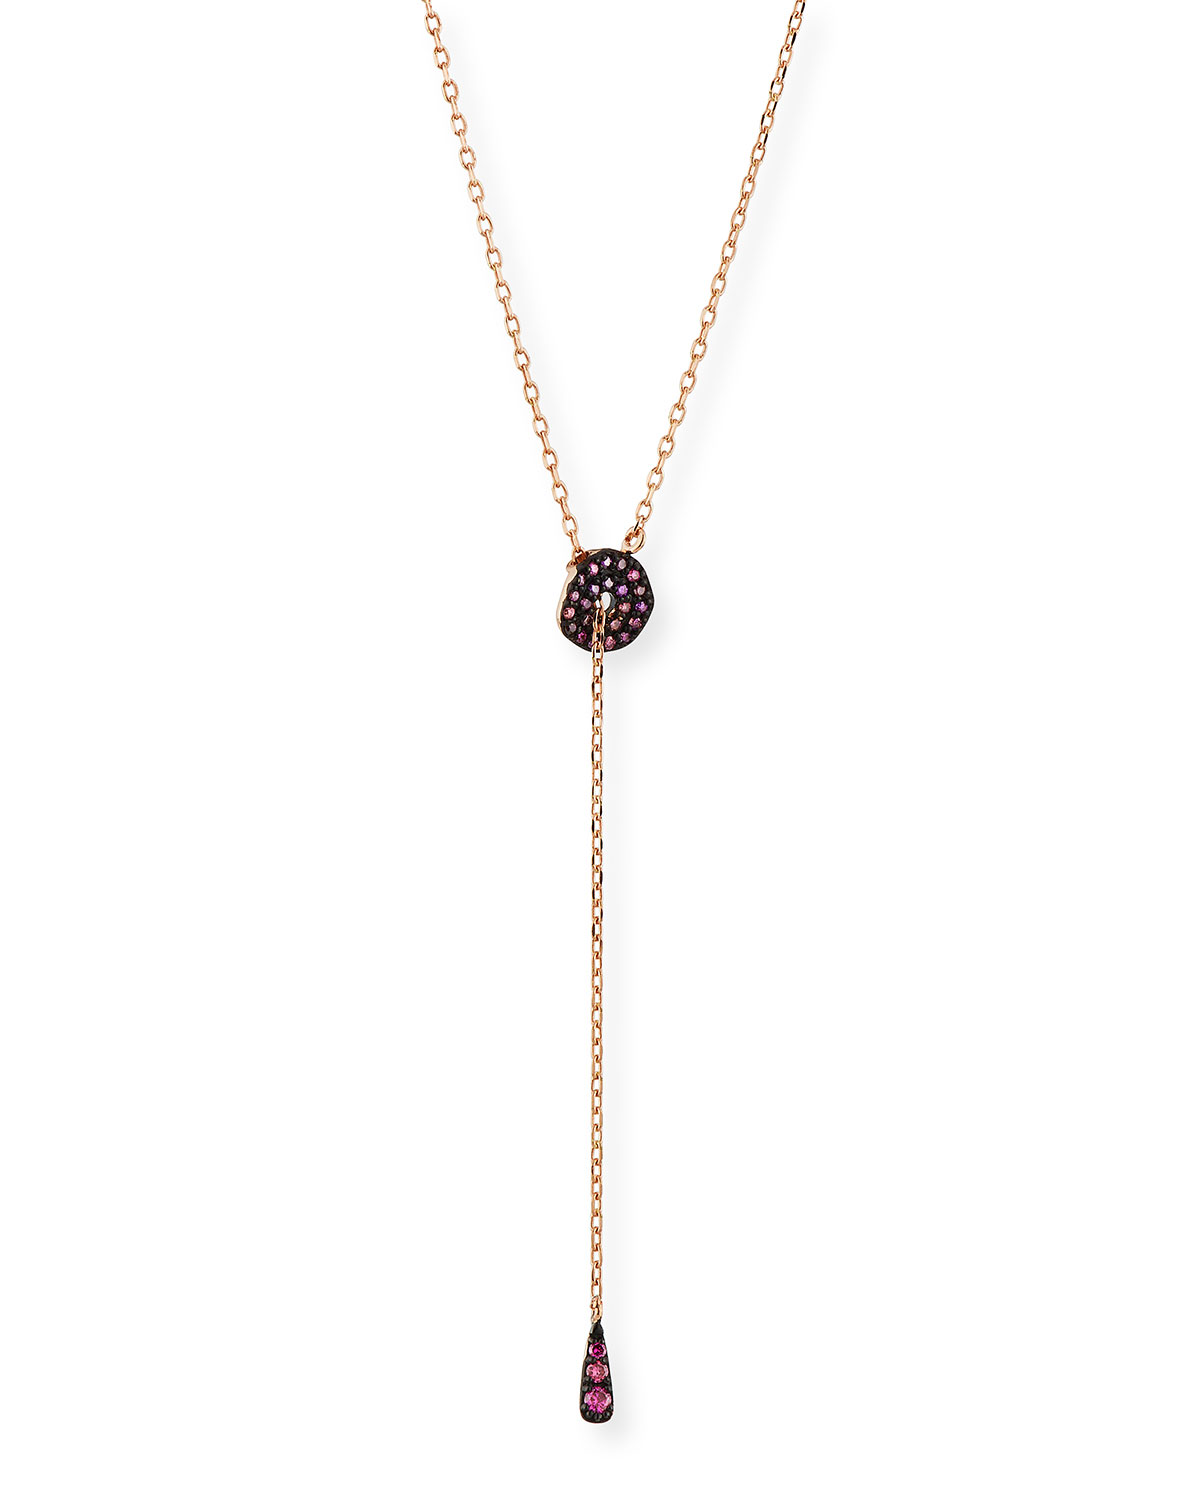 Stevie Wren Adjustable Circlet Lariat Necklace in 14K Rose Gold with Pink Diamonds